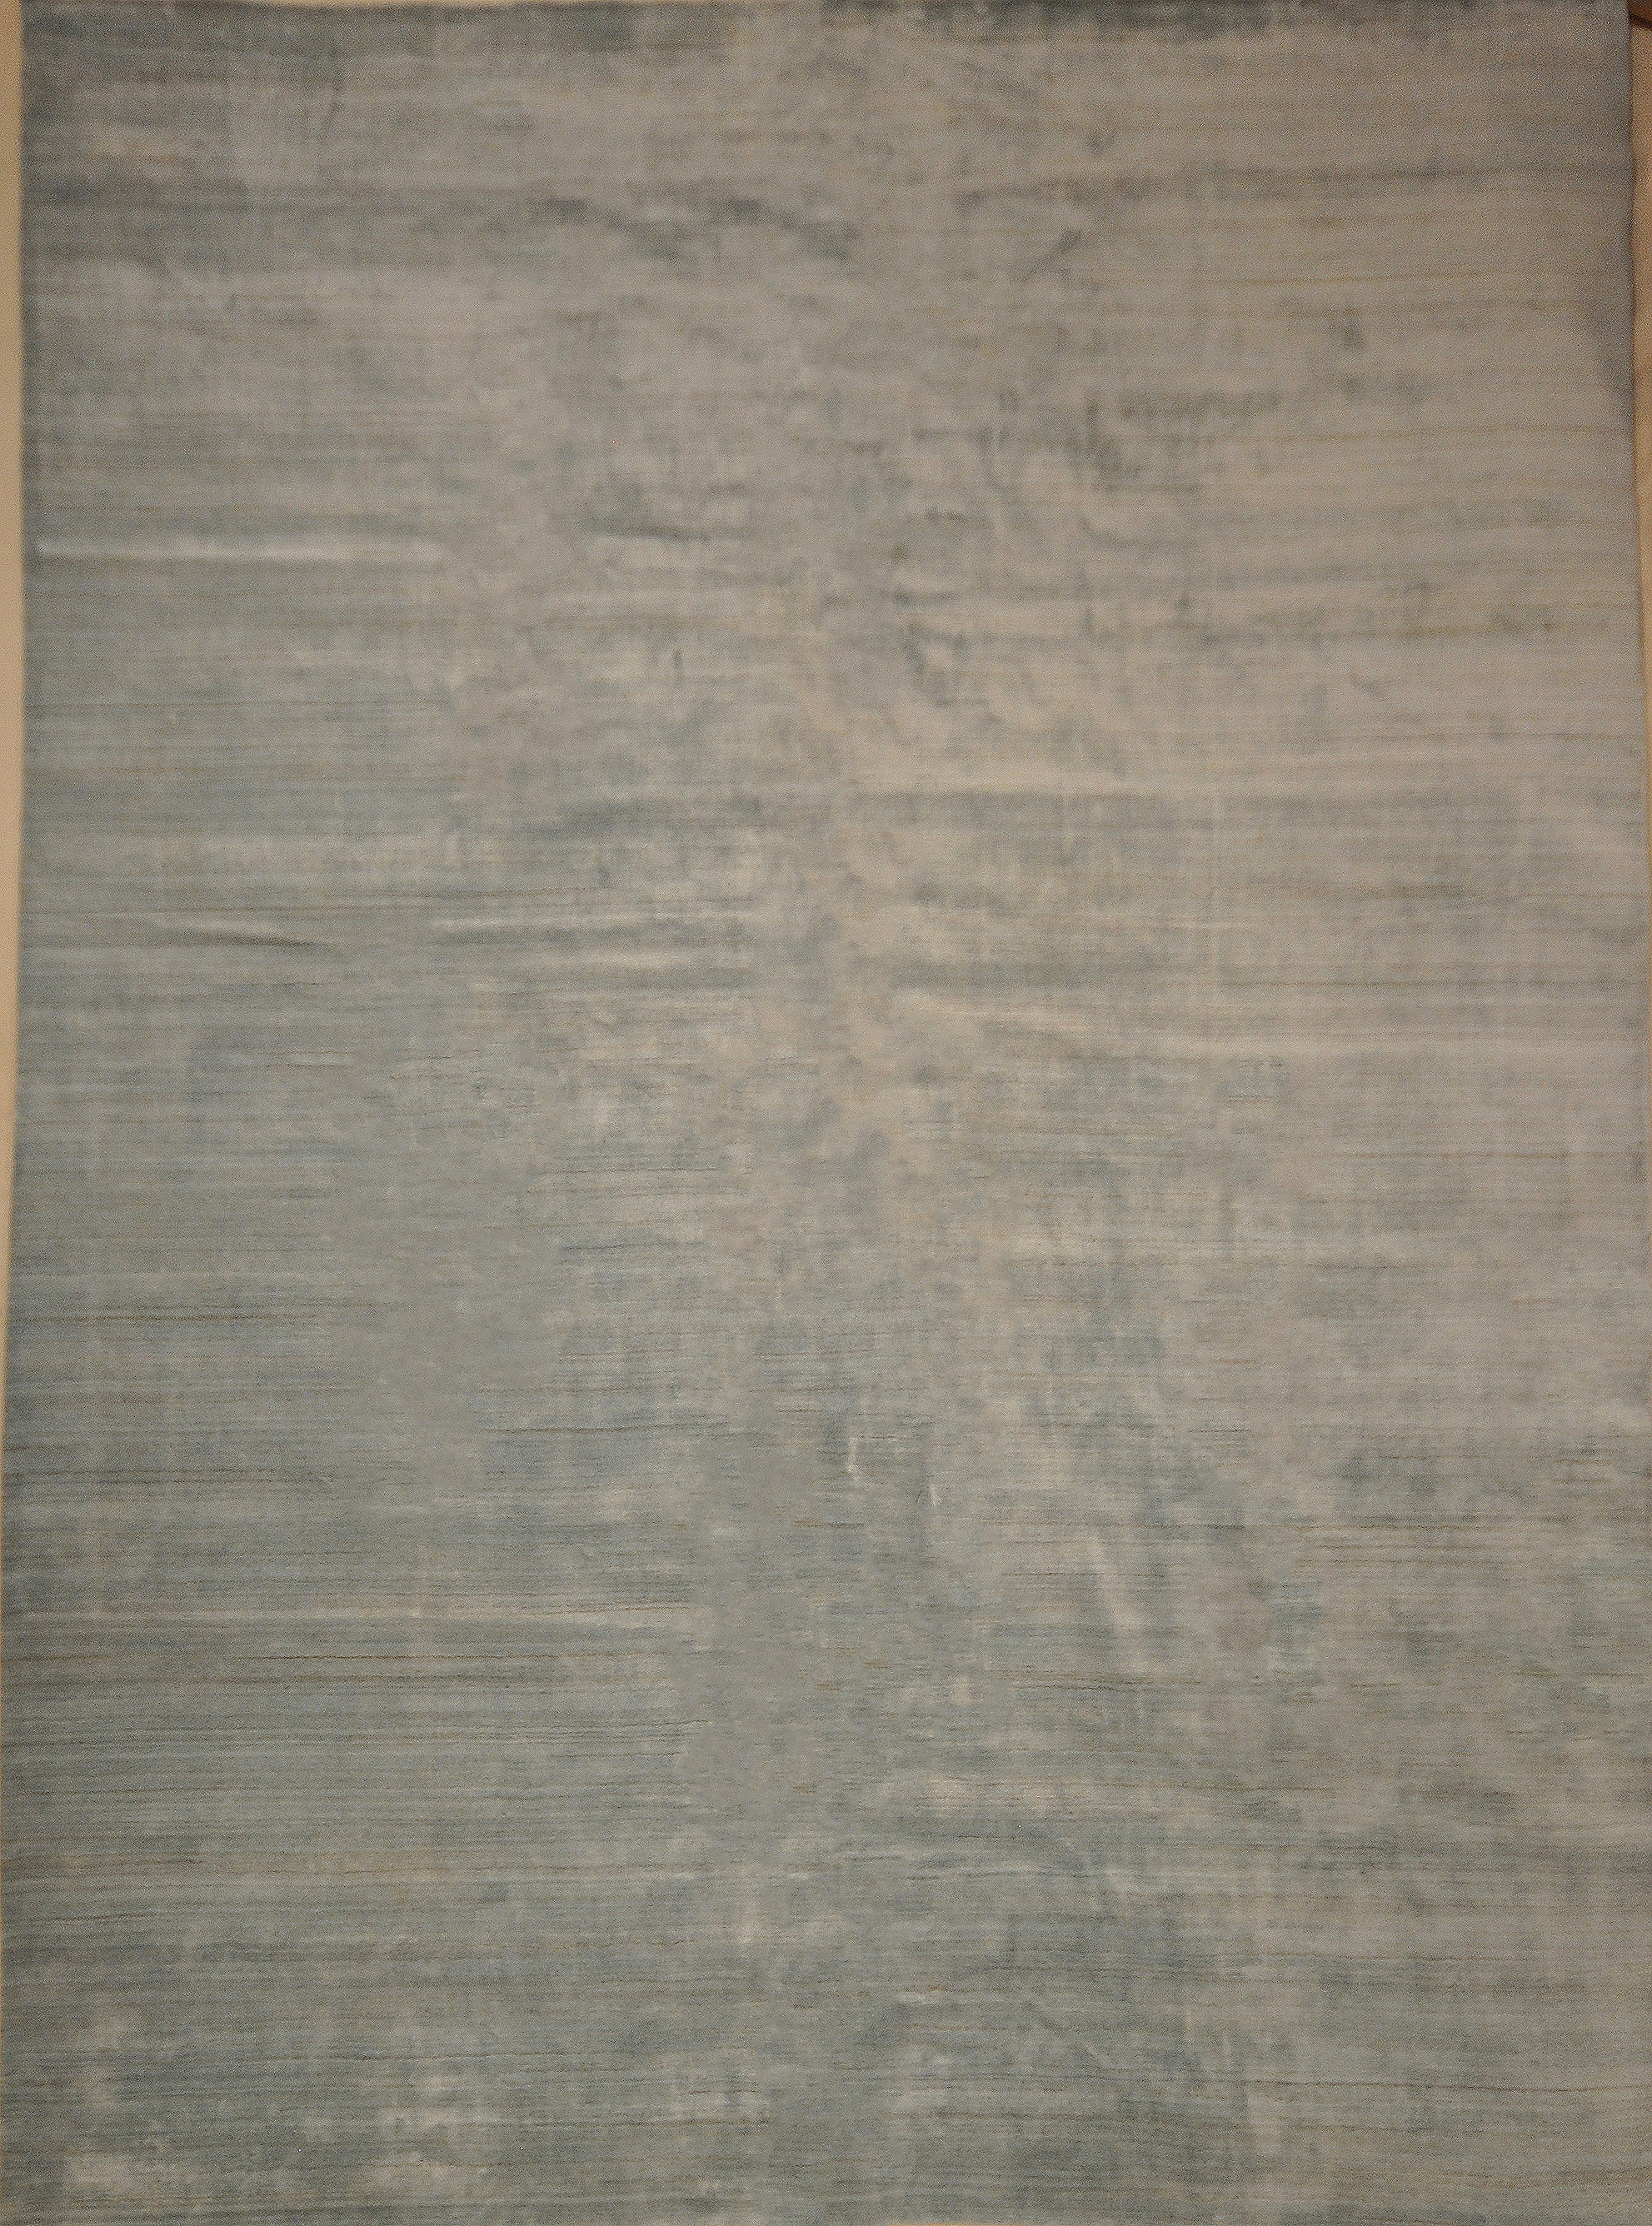 Ocean handloom Rug Santa Barbara Design Center-1